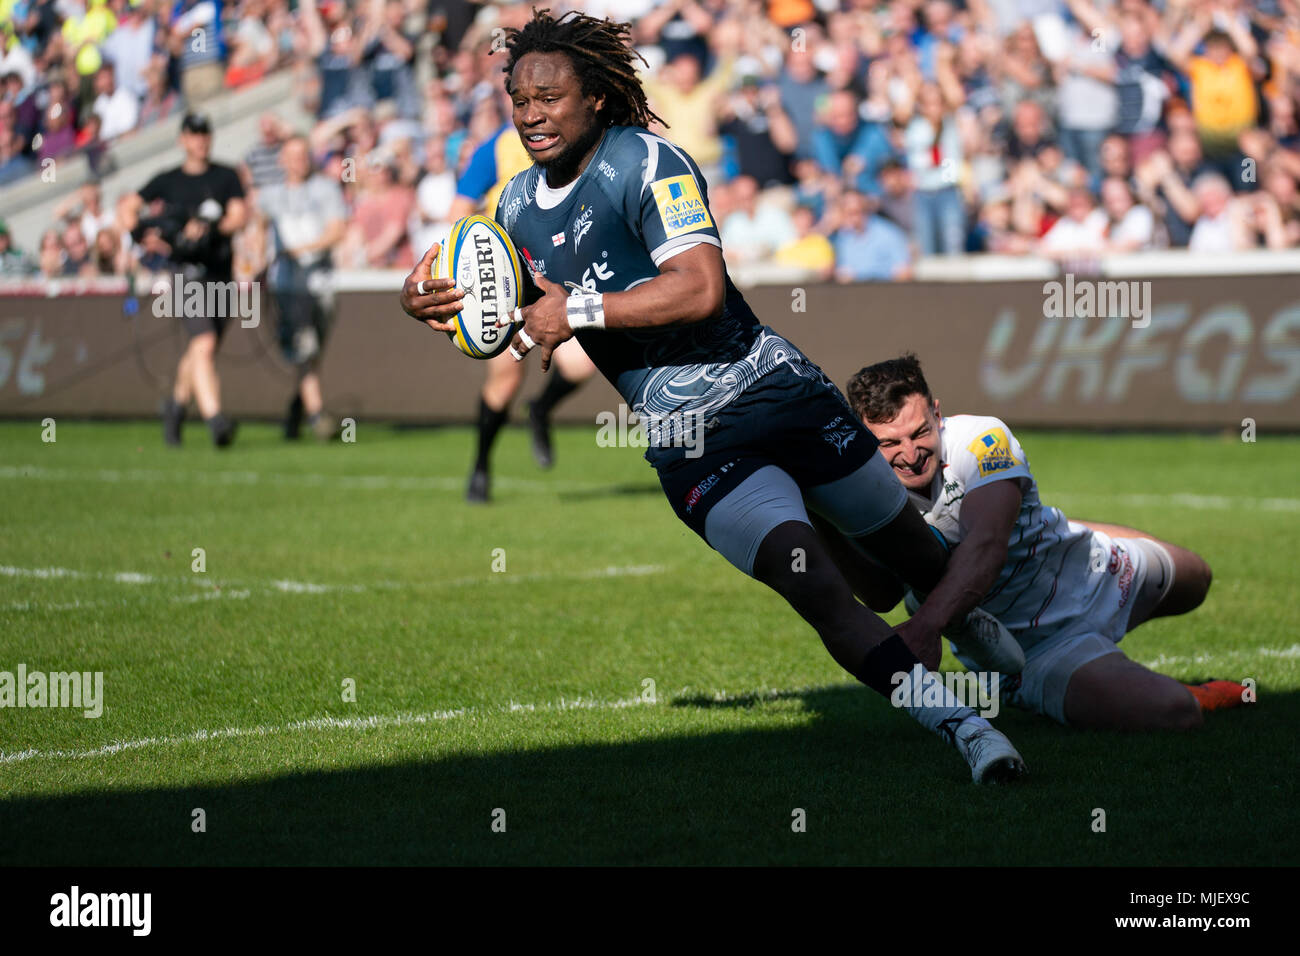 Manchester, UK. 5th May, 2018. Sale Shark's MARLAND YARDE scores a try   5th May 2018 , AJ Bell Stadium, Sale, England; English Premiership Rugby League, Sale Sharks v Leicester Tigers ; Credit: News Images /Alamy Live News - Stock Image